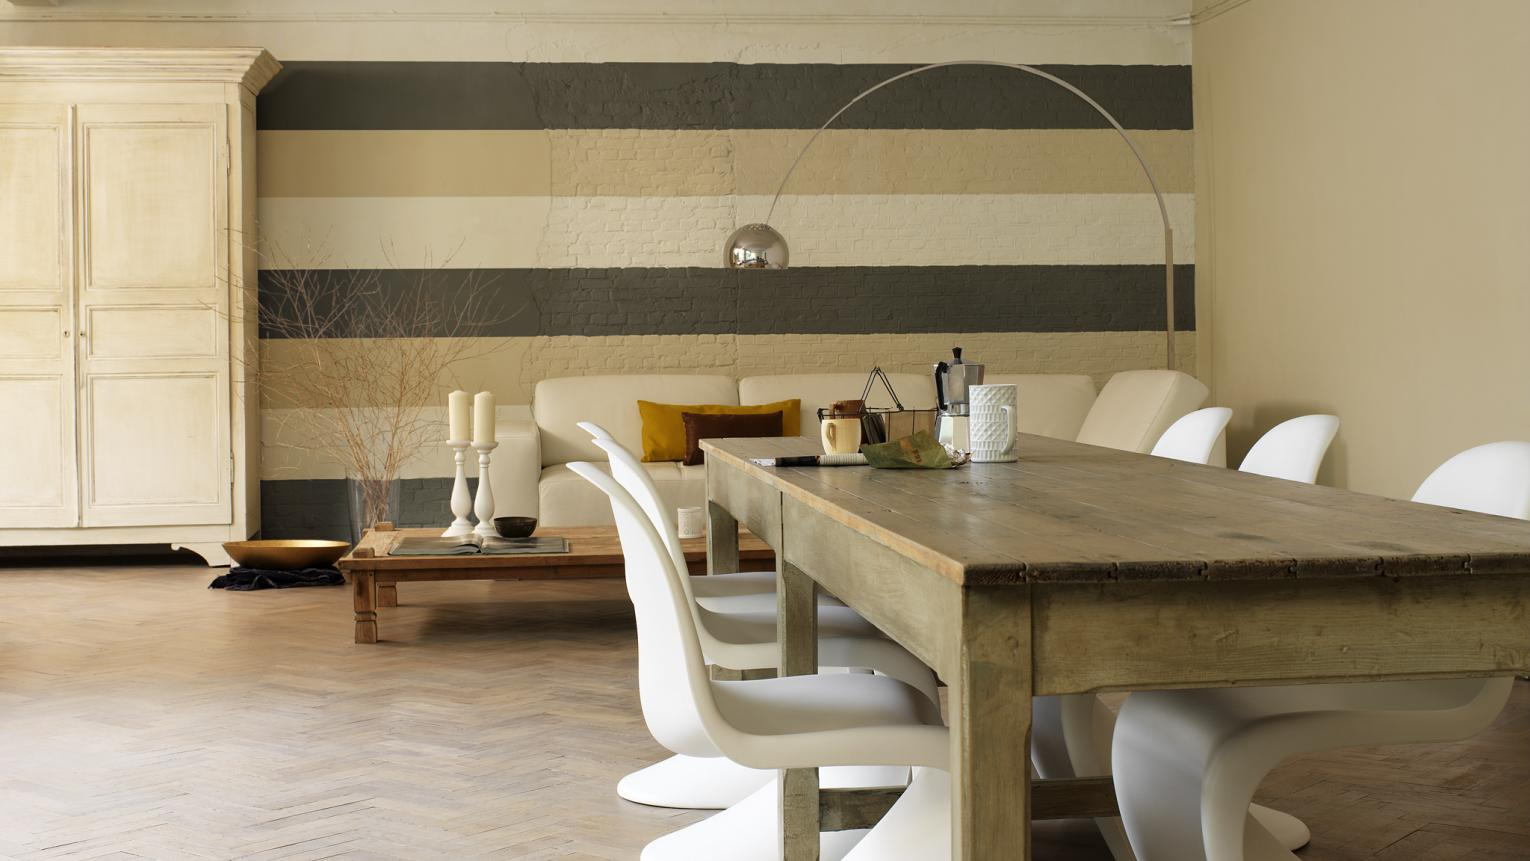 Create a feature with horizontal stripes